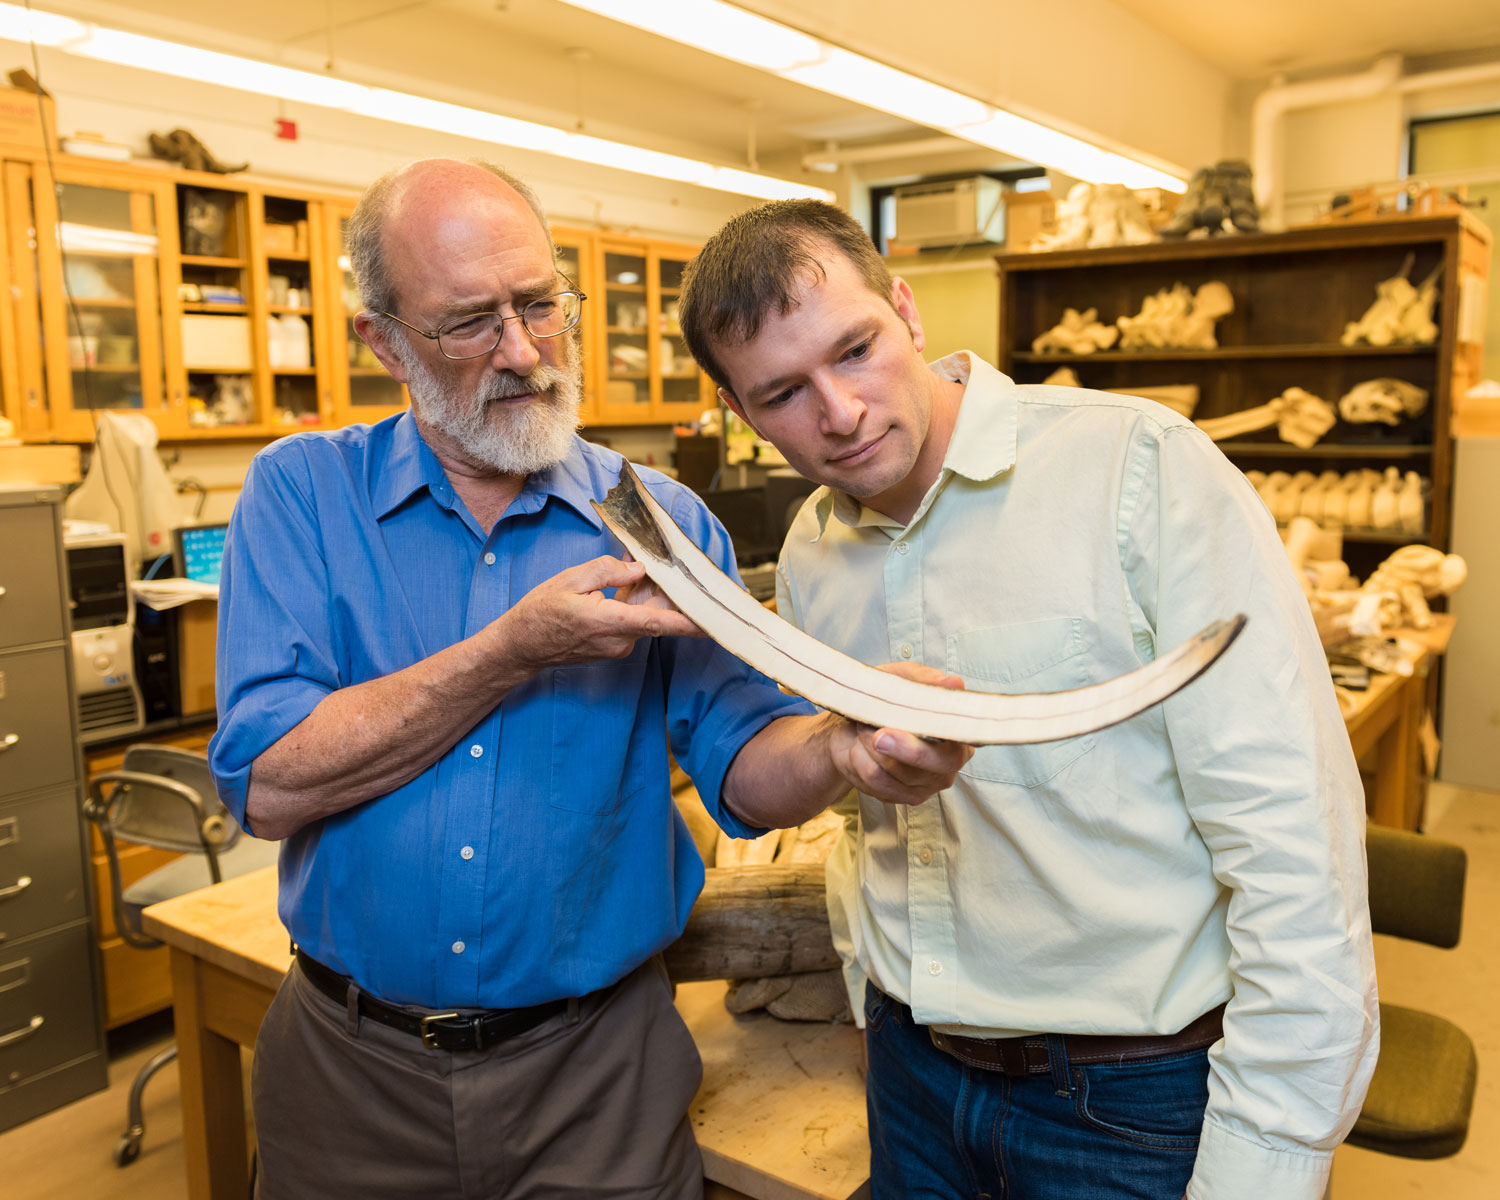 Daniel Fisher, director of the University of Michigan Museum of Paleontology, left, and Michael Cherney, a U-M doctoral student in the Department of Earth and Environmental Sciences, examine a tusk of a juvenile woolly mammoth from Siberia. The tusk was cut along its axis to expose the interior surface.